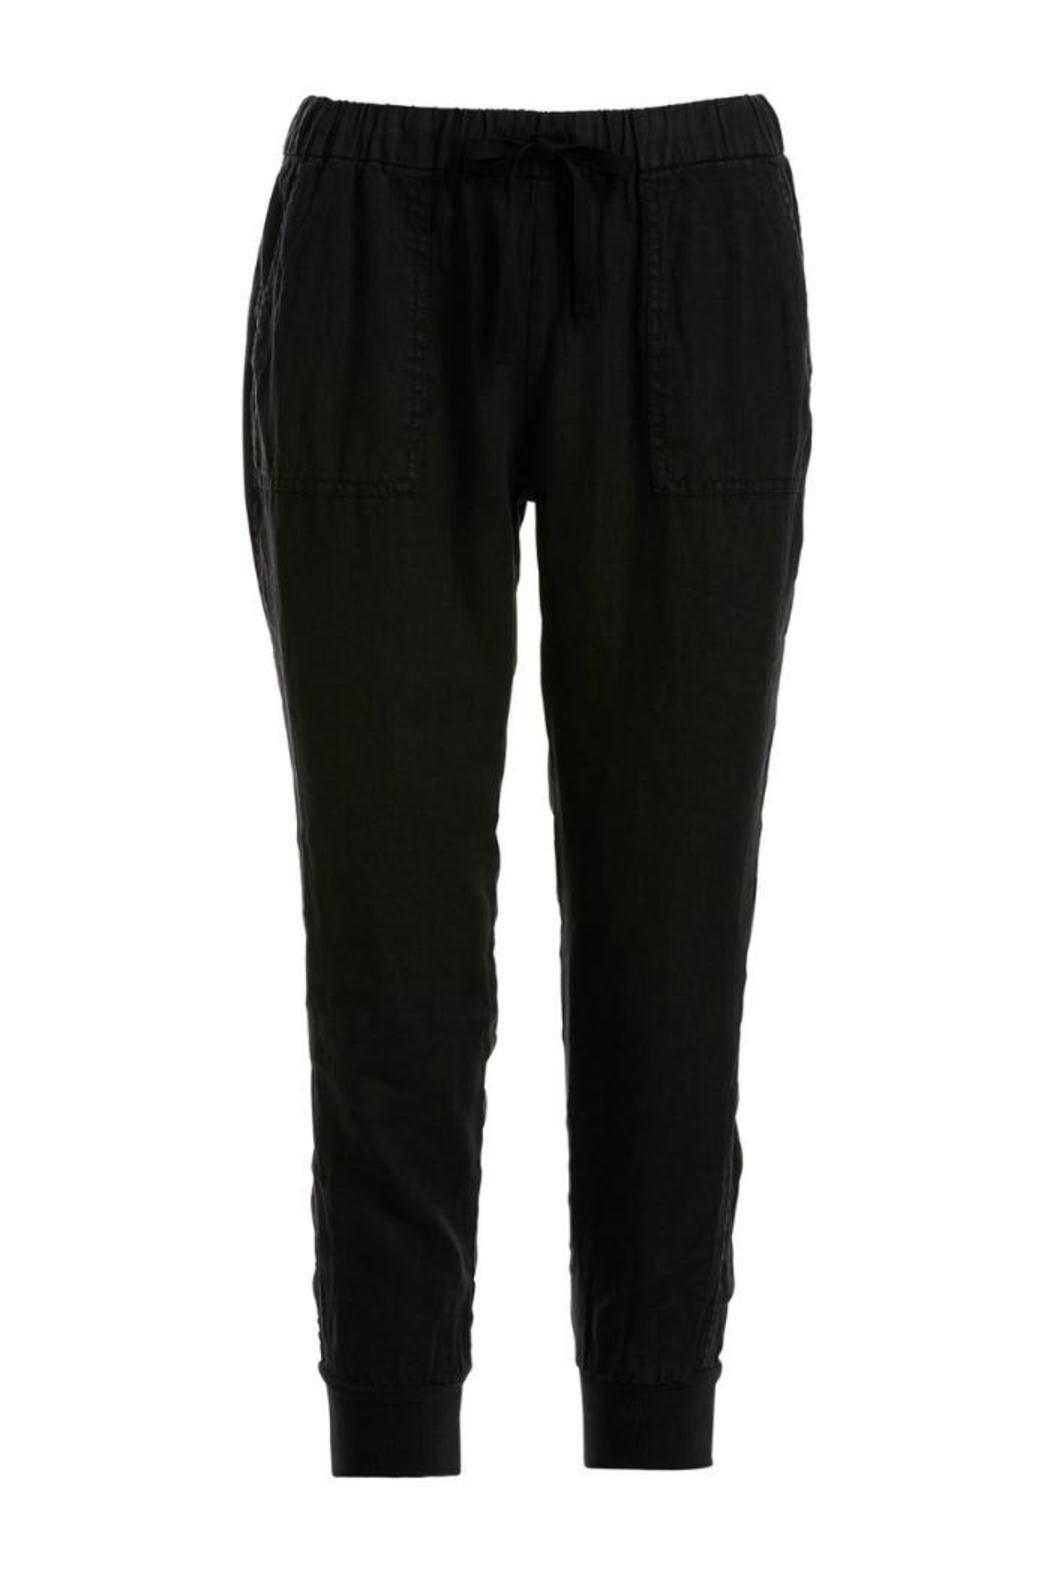 Joie Cynthia Linen Pant - Back Cropped Image